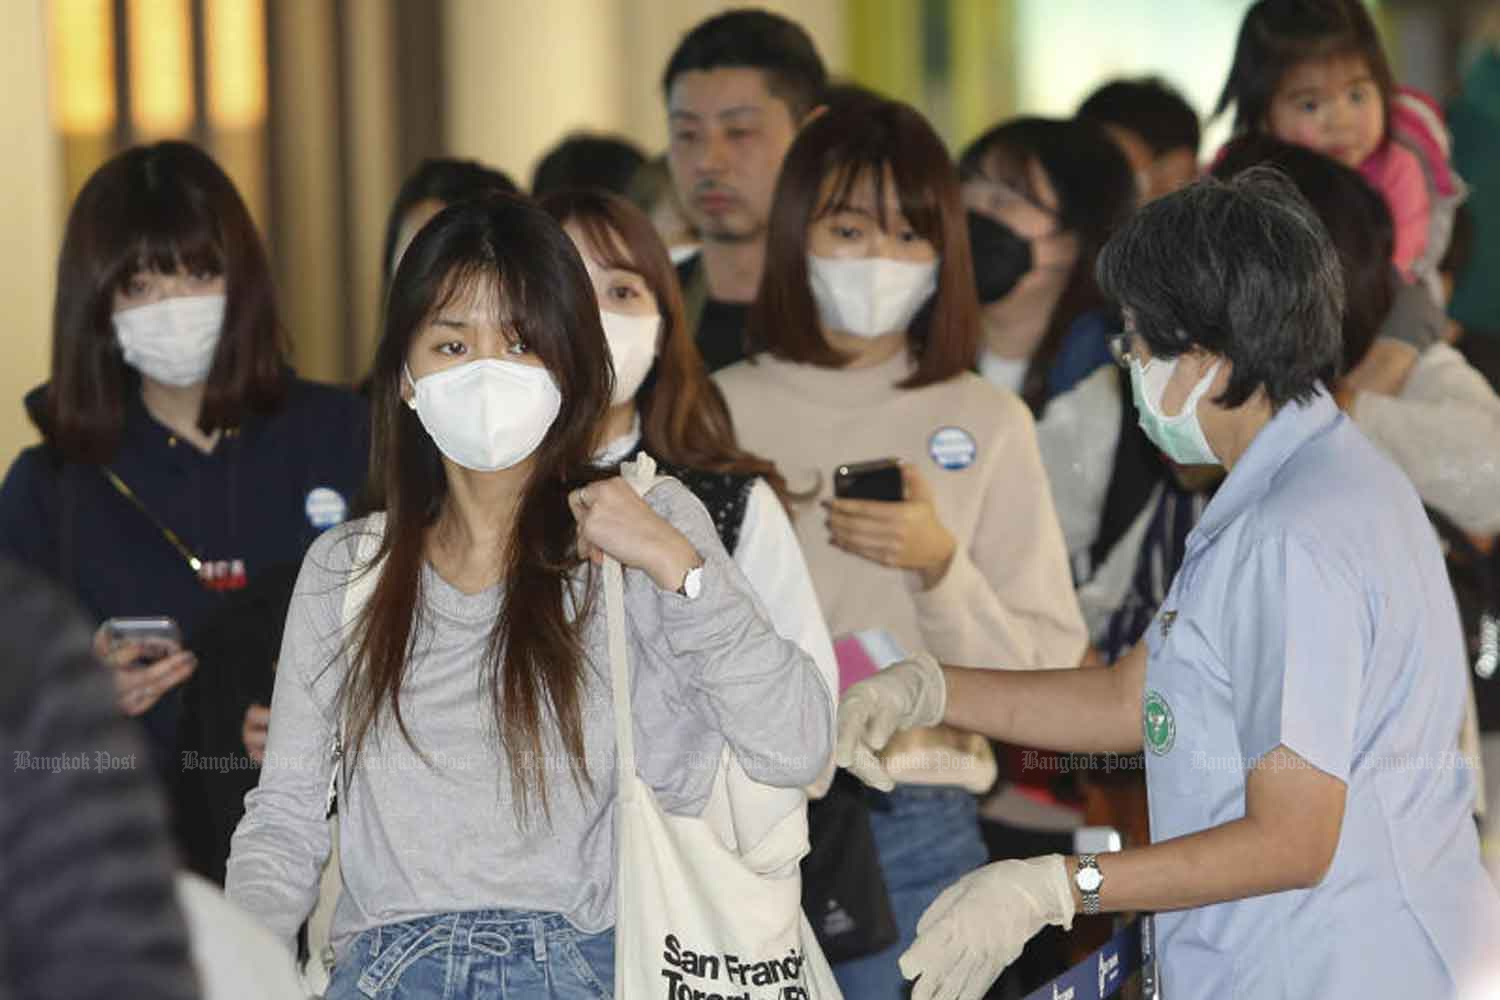 Health officials check passengers at Don Mueang airport in Bangkok for symptoms of the novel coronavirus, as local infections remain stable at 33 cases. (Photo by Pattarapong Chatpattarasill)